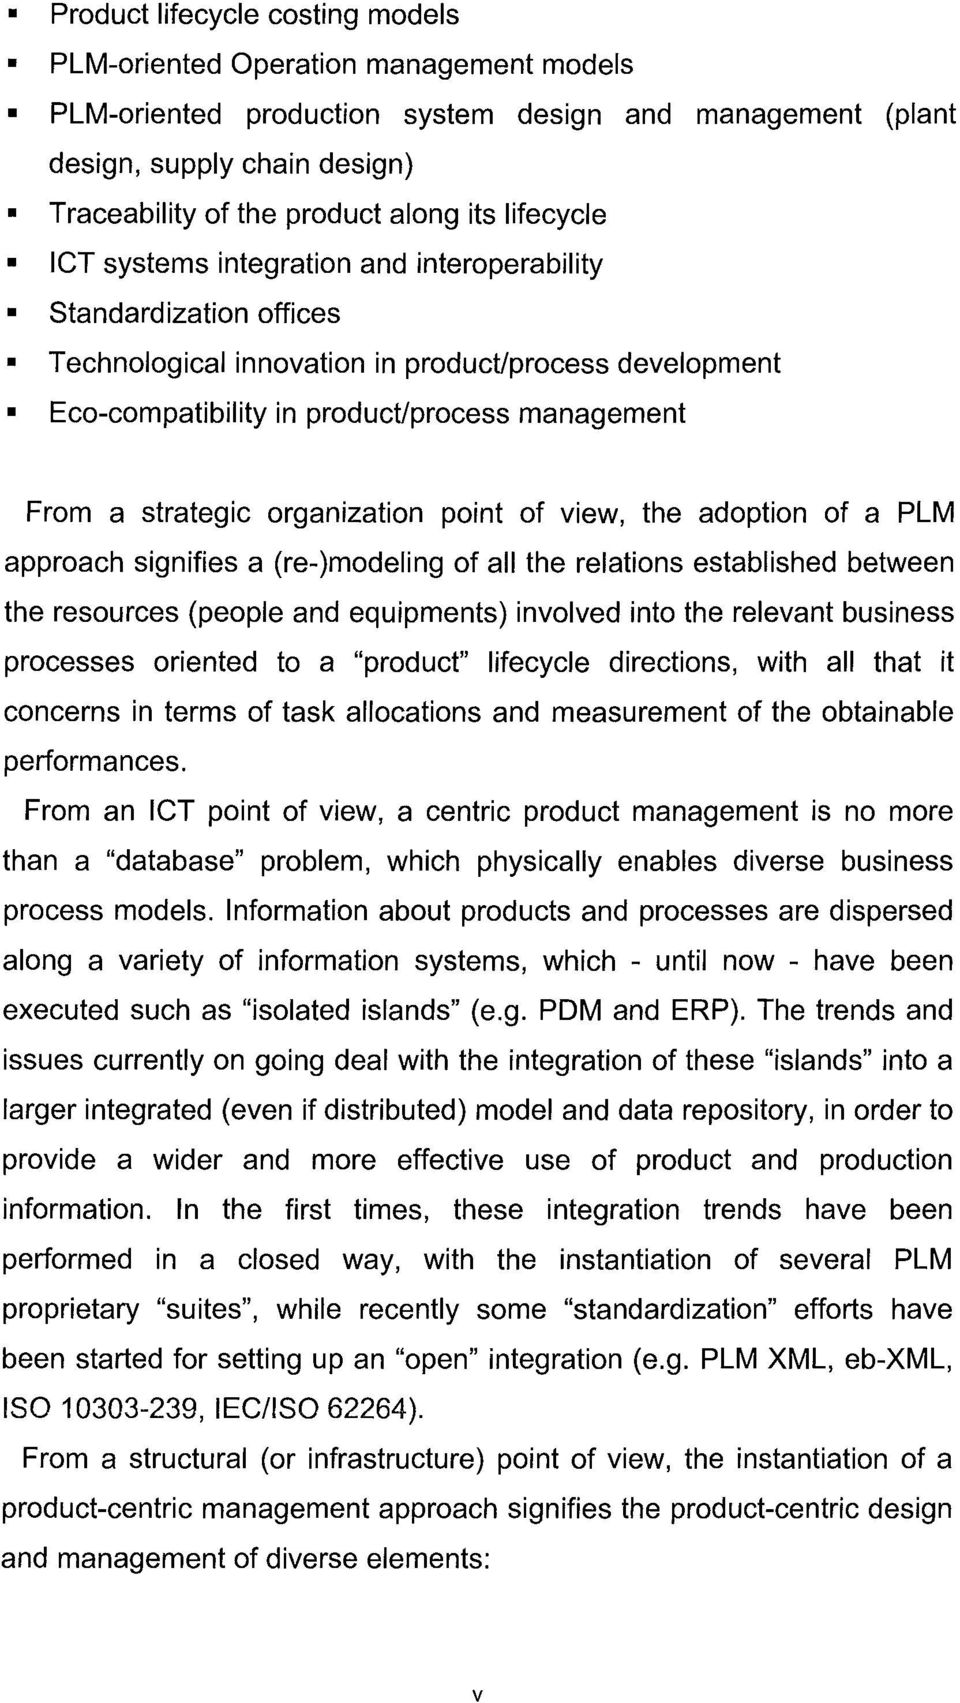 strategic organization point of view, the adoption of a PLM approach signifies a (re-)modeling of ail the relations established between the resources (people and equipments) involved into the